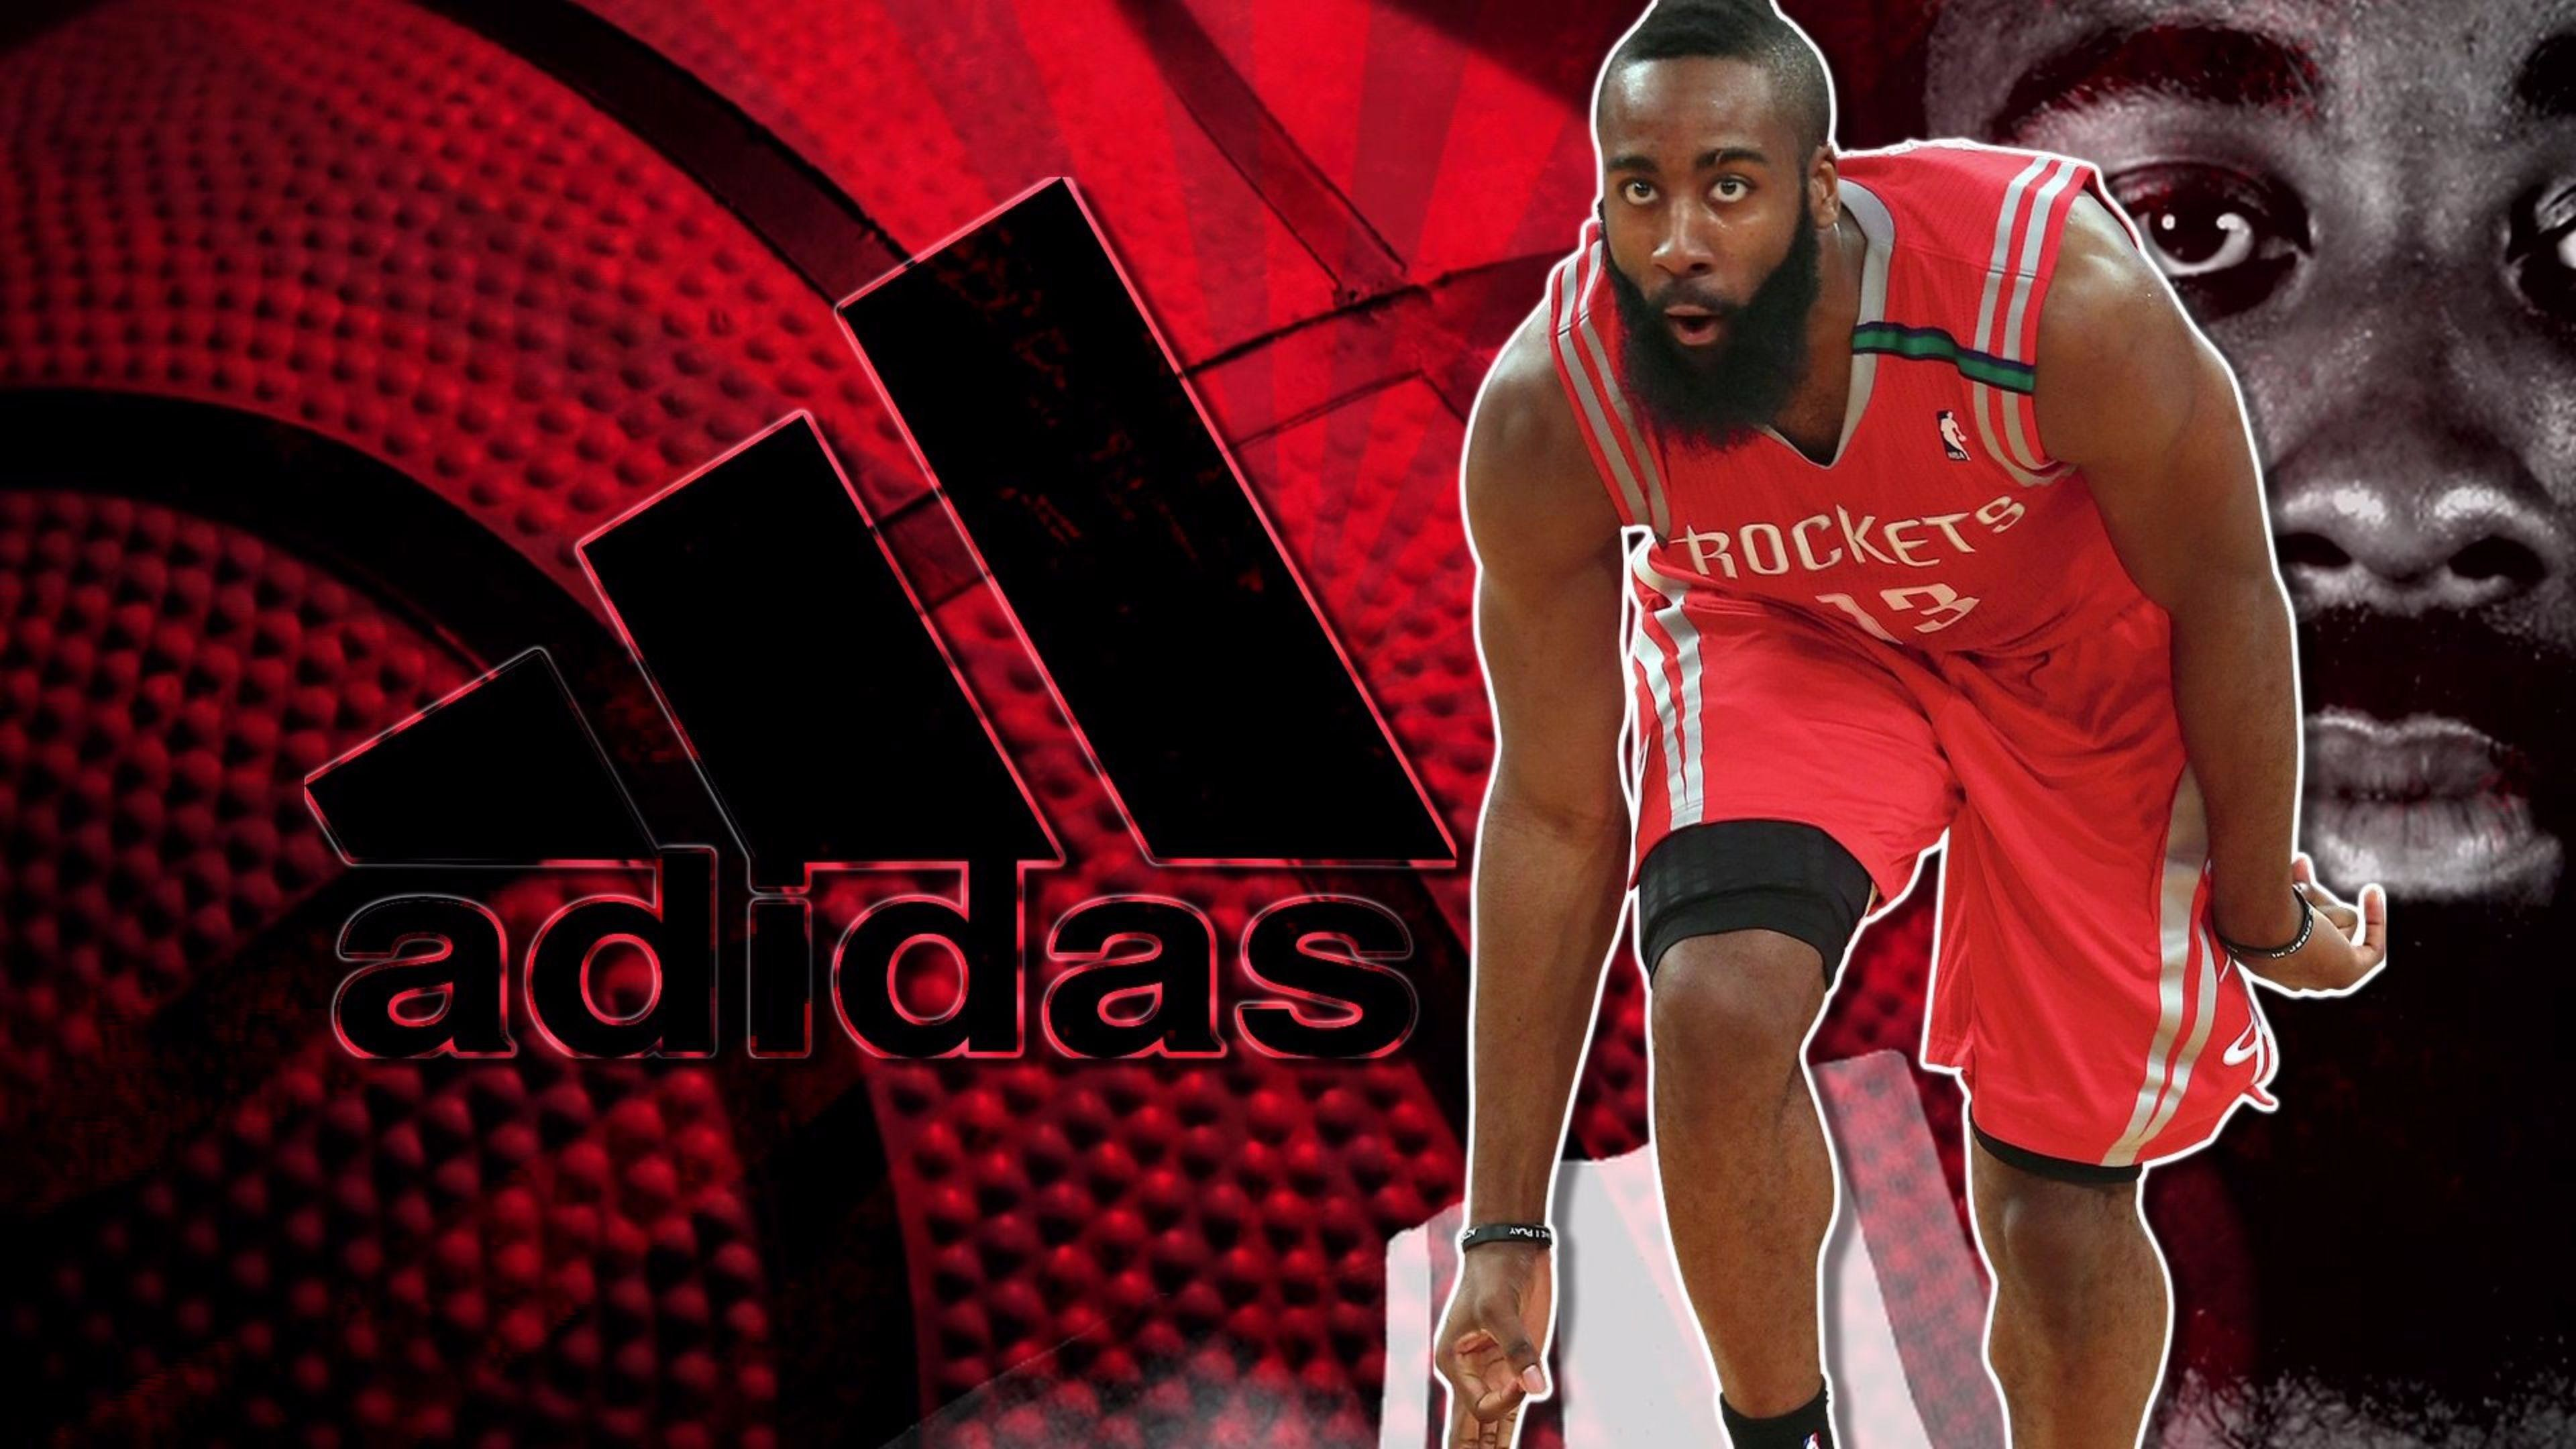 Free James Harden Backgrounds   Wallpapers, Backgrounds, Images .